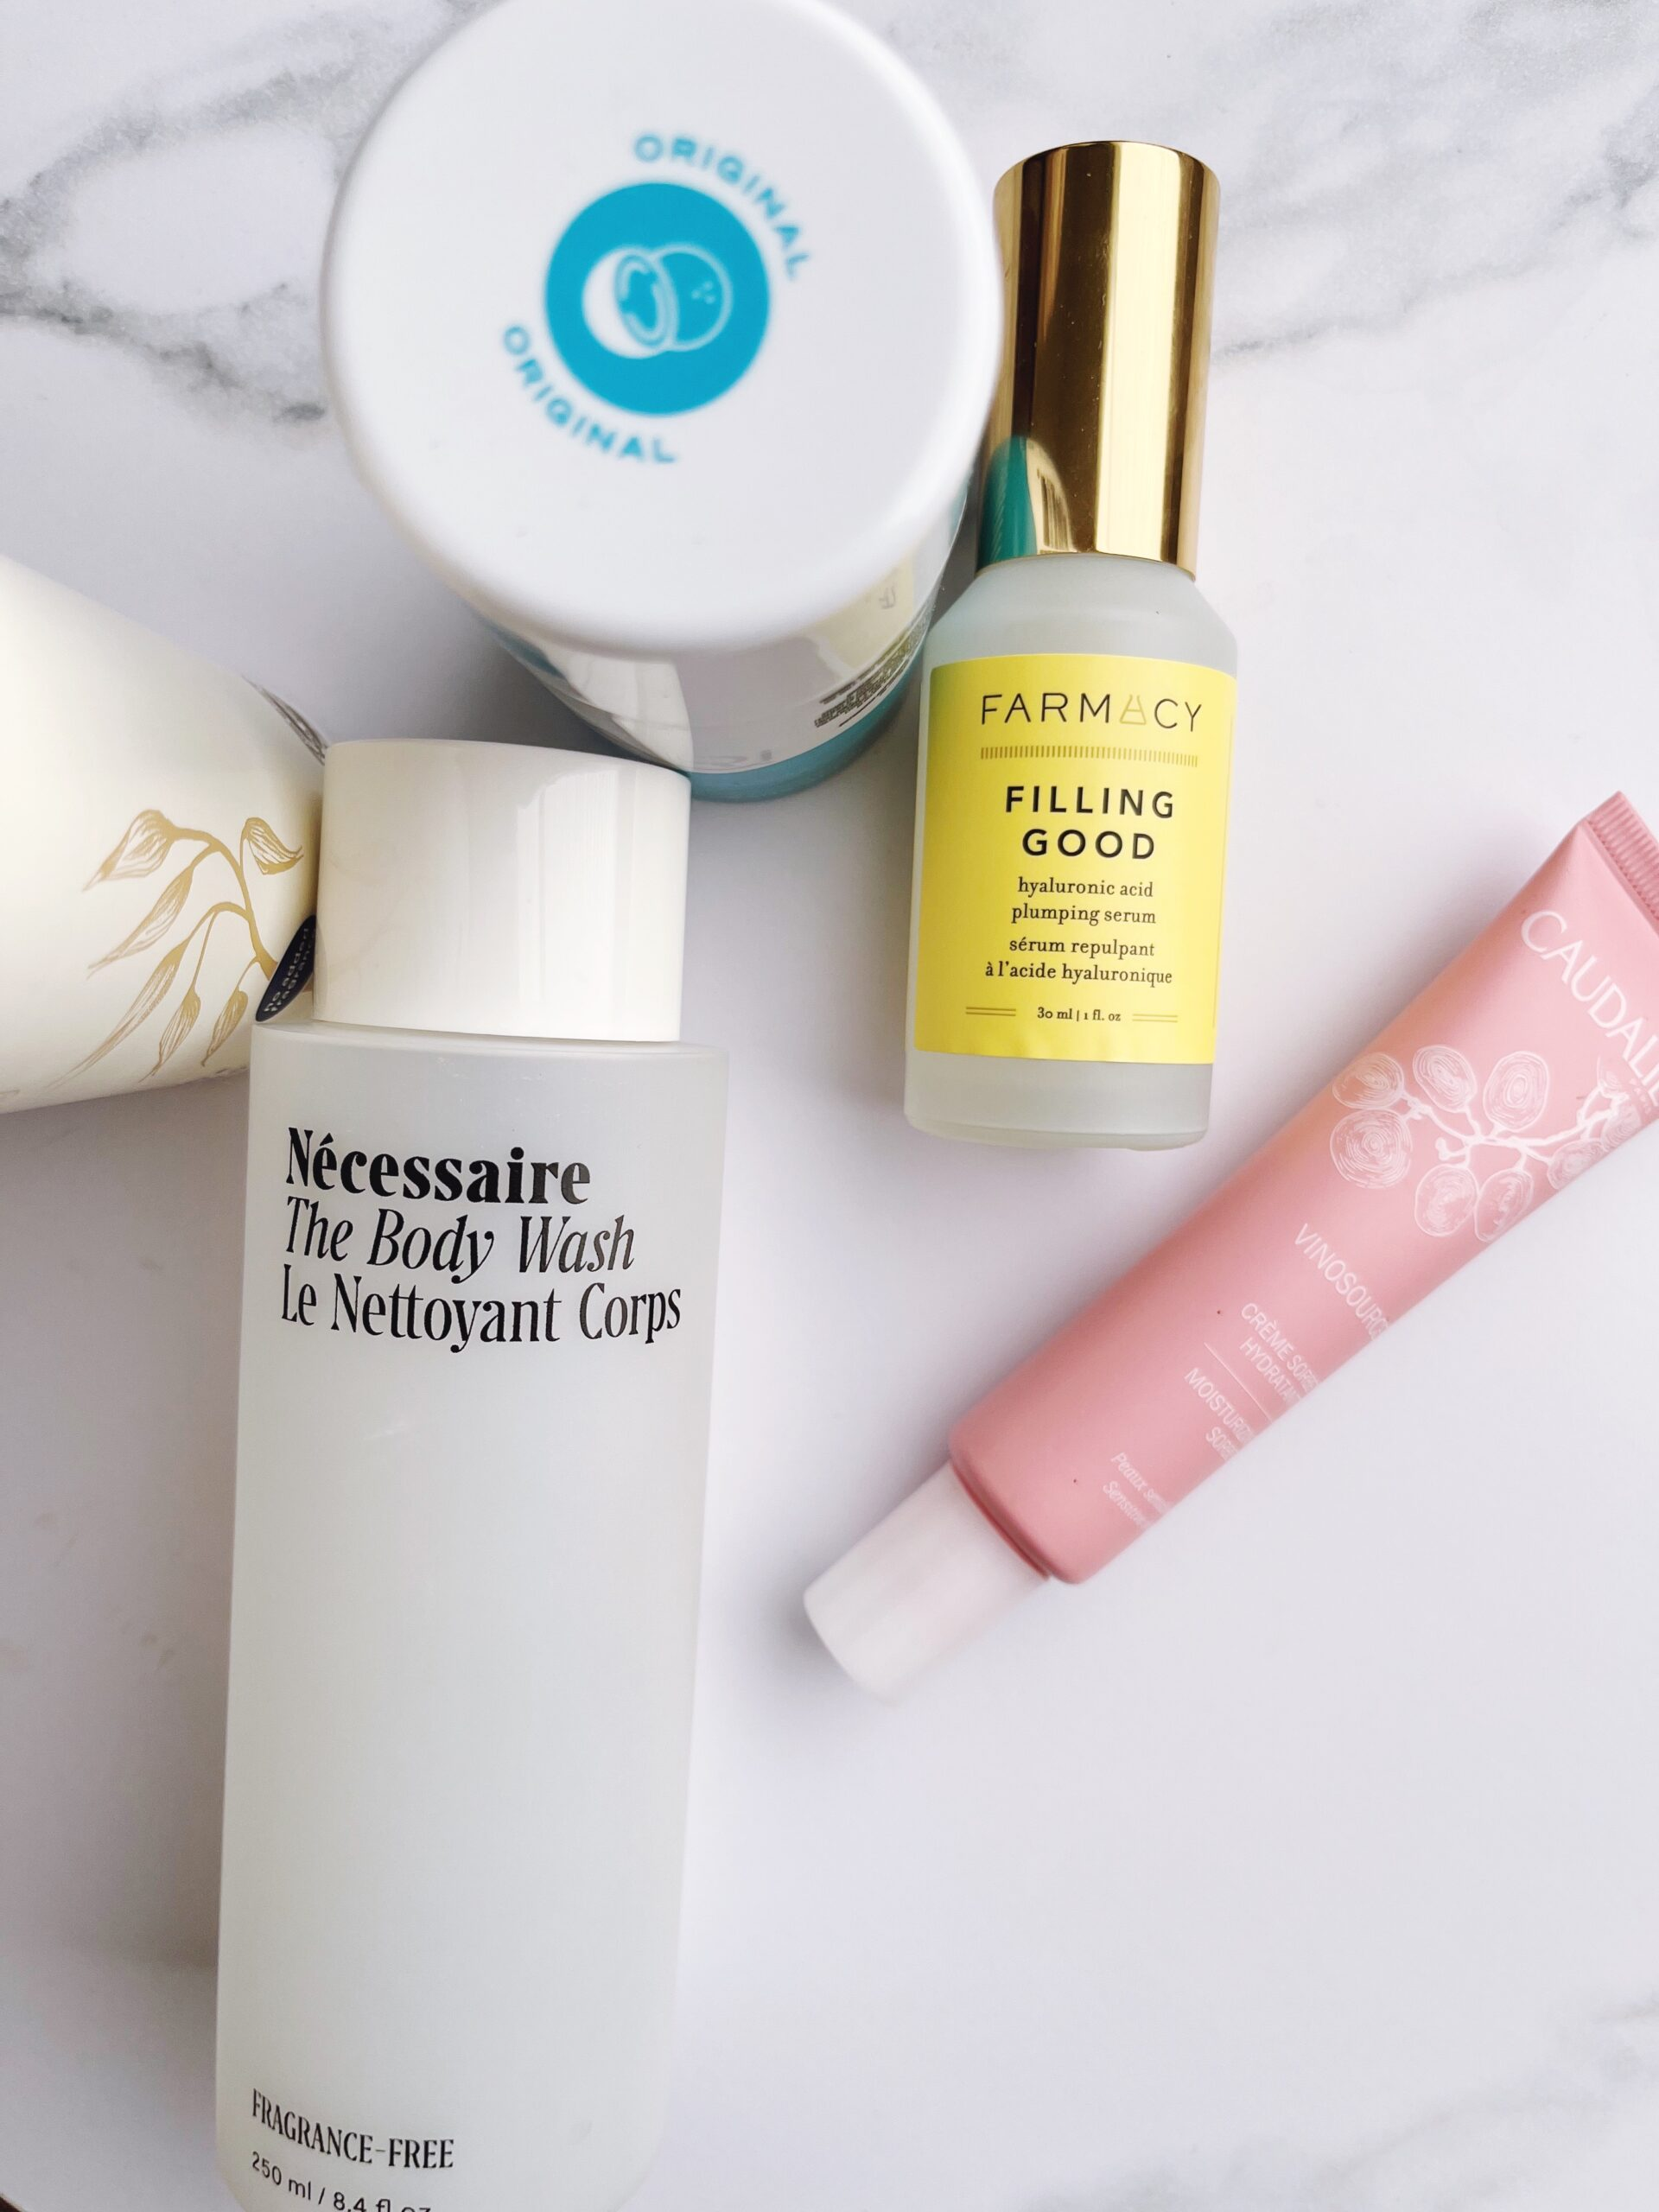 2021 recent skincare beauty product empties